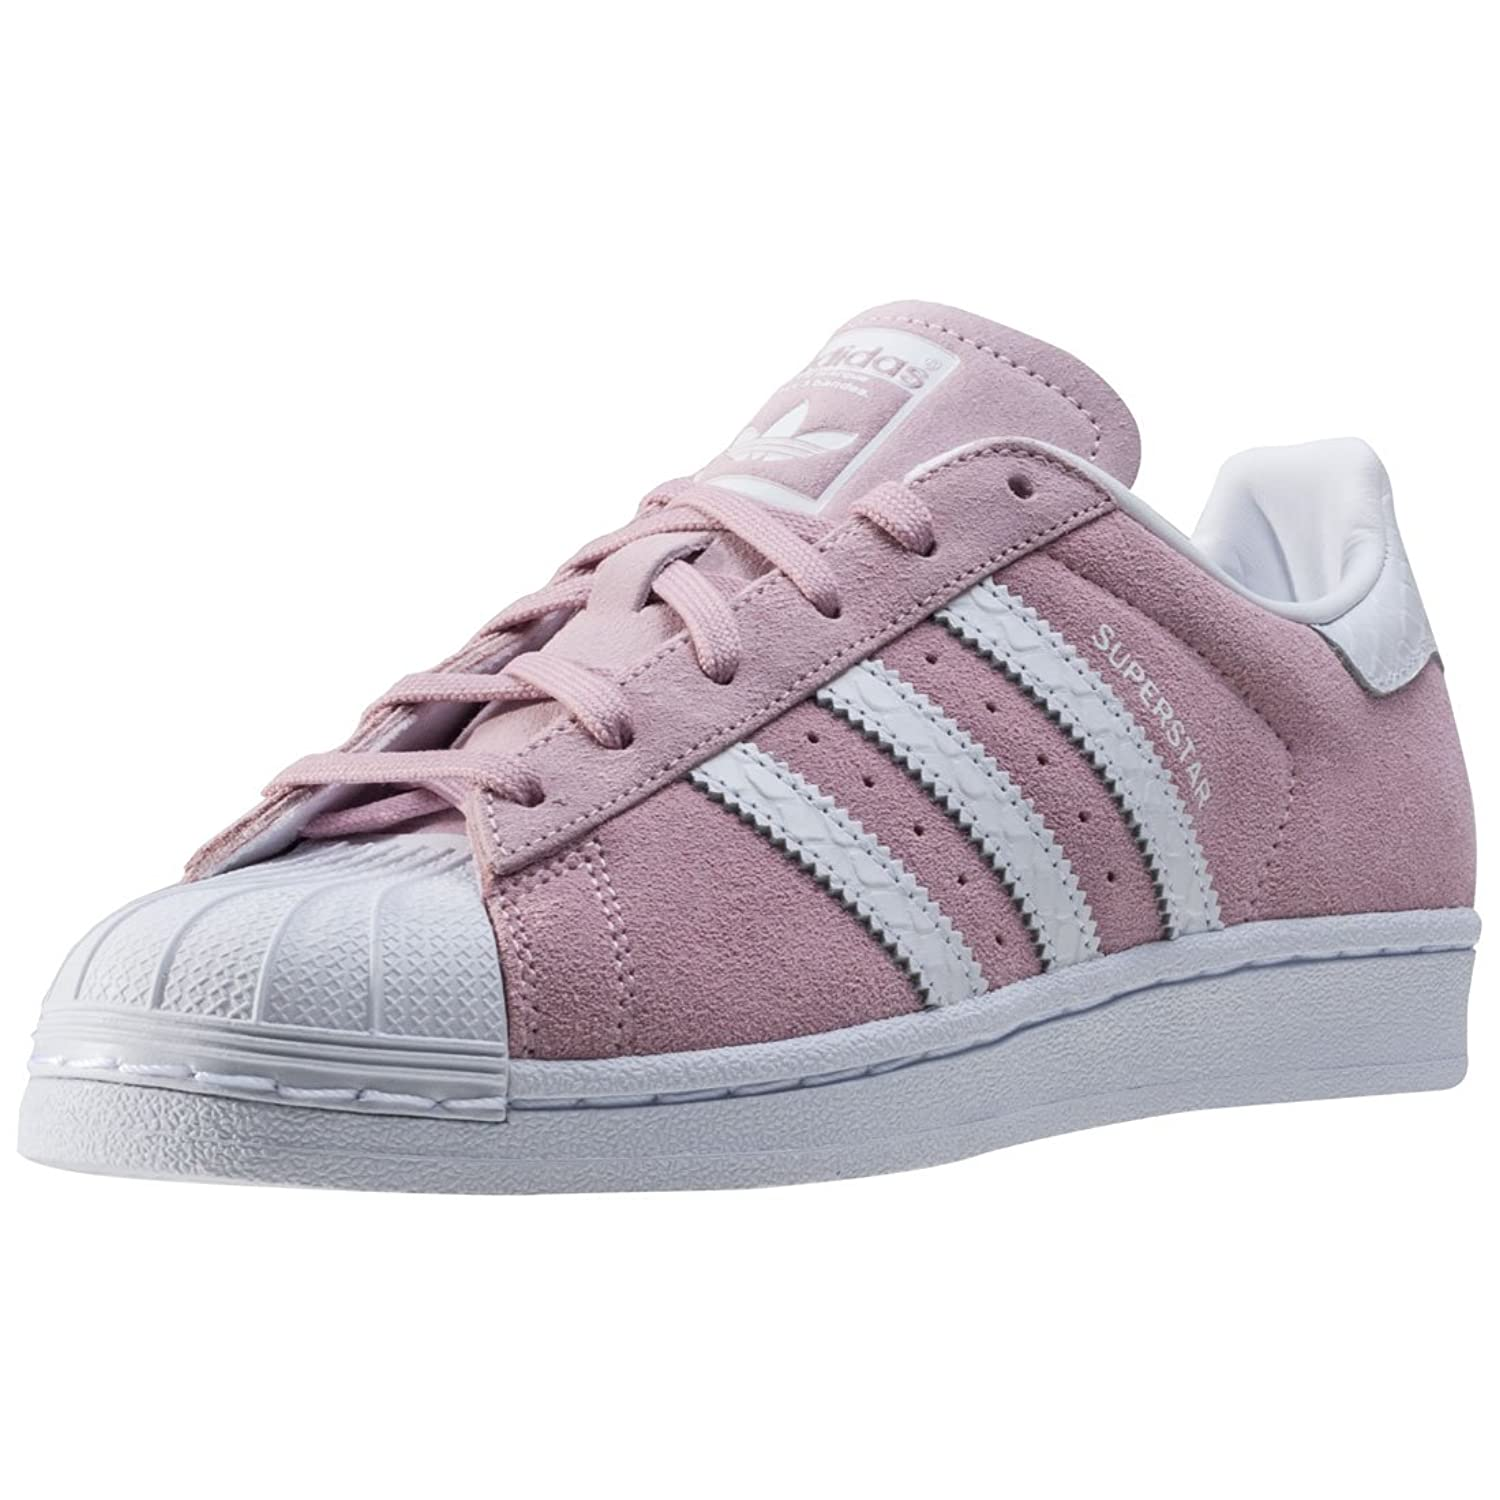 Superstars Adidas Damen Silber